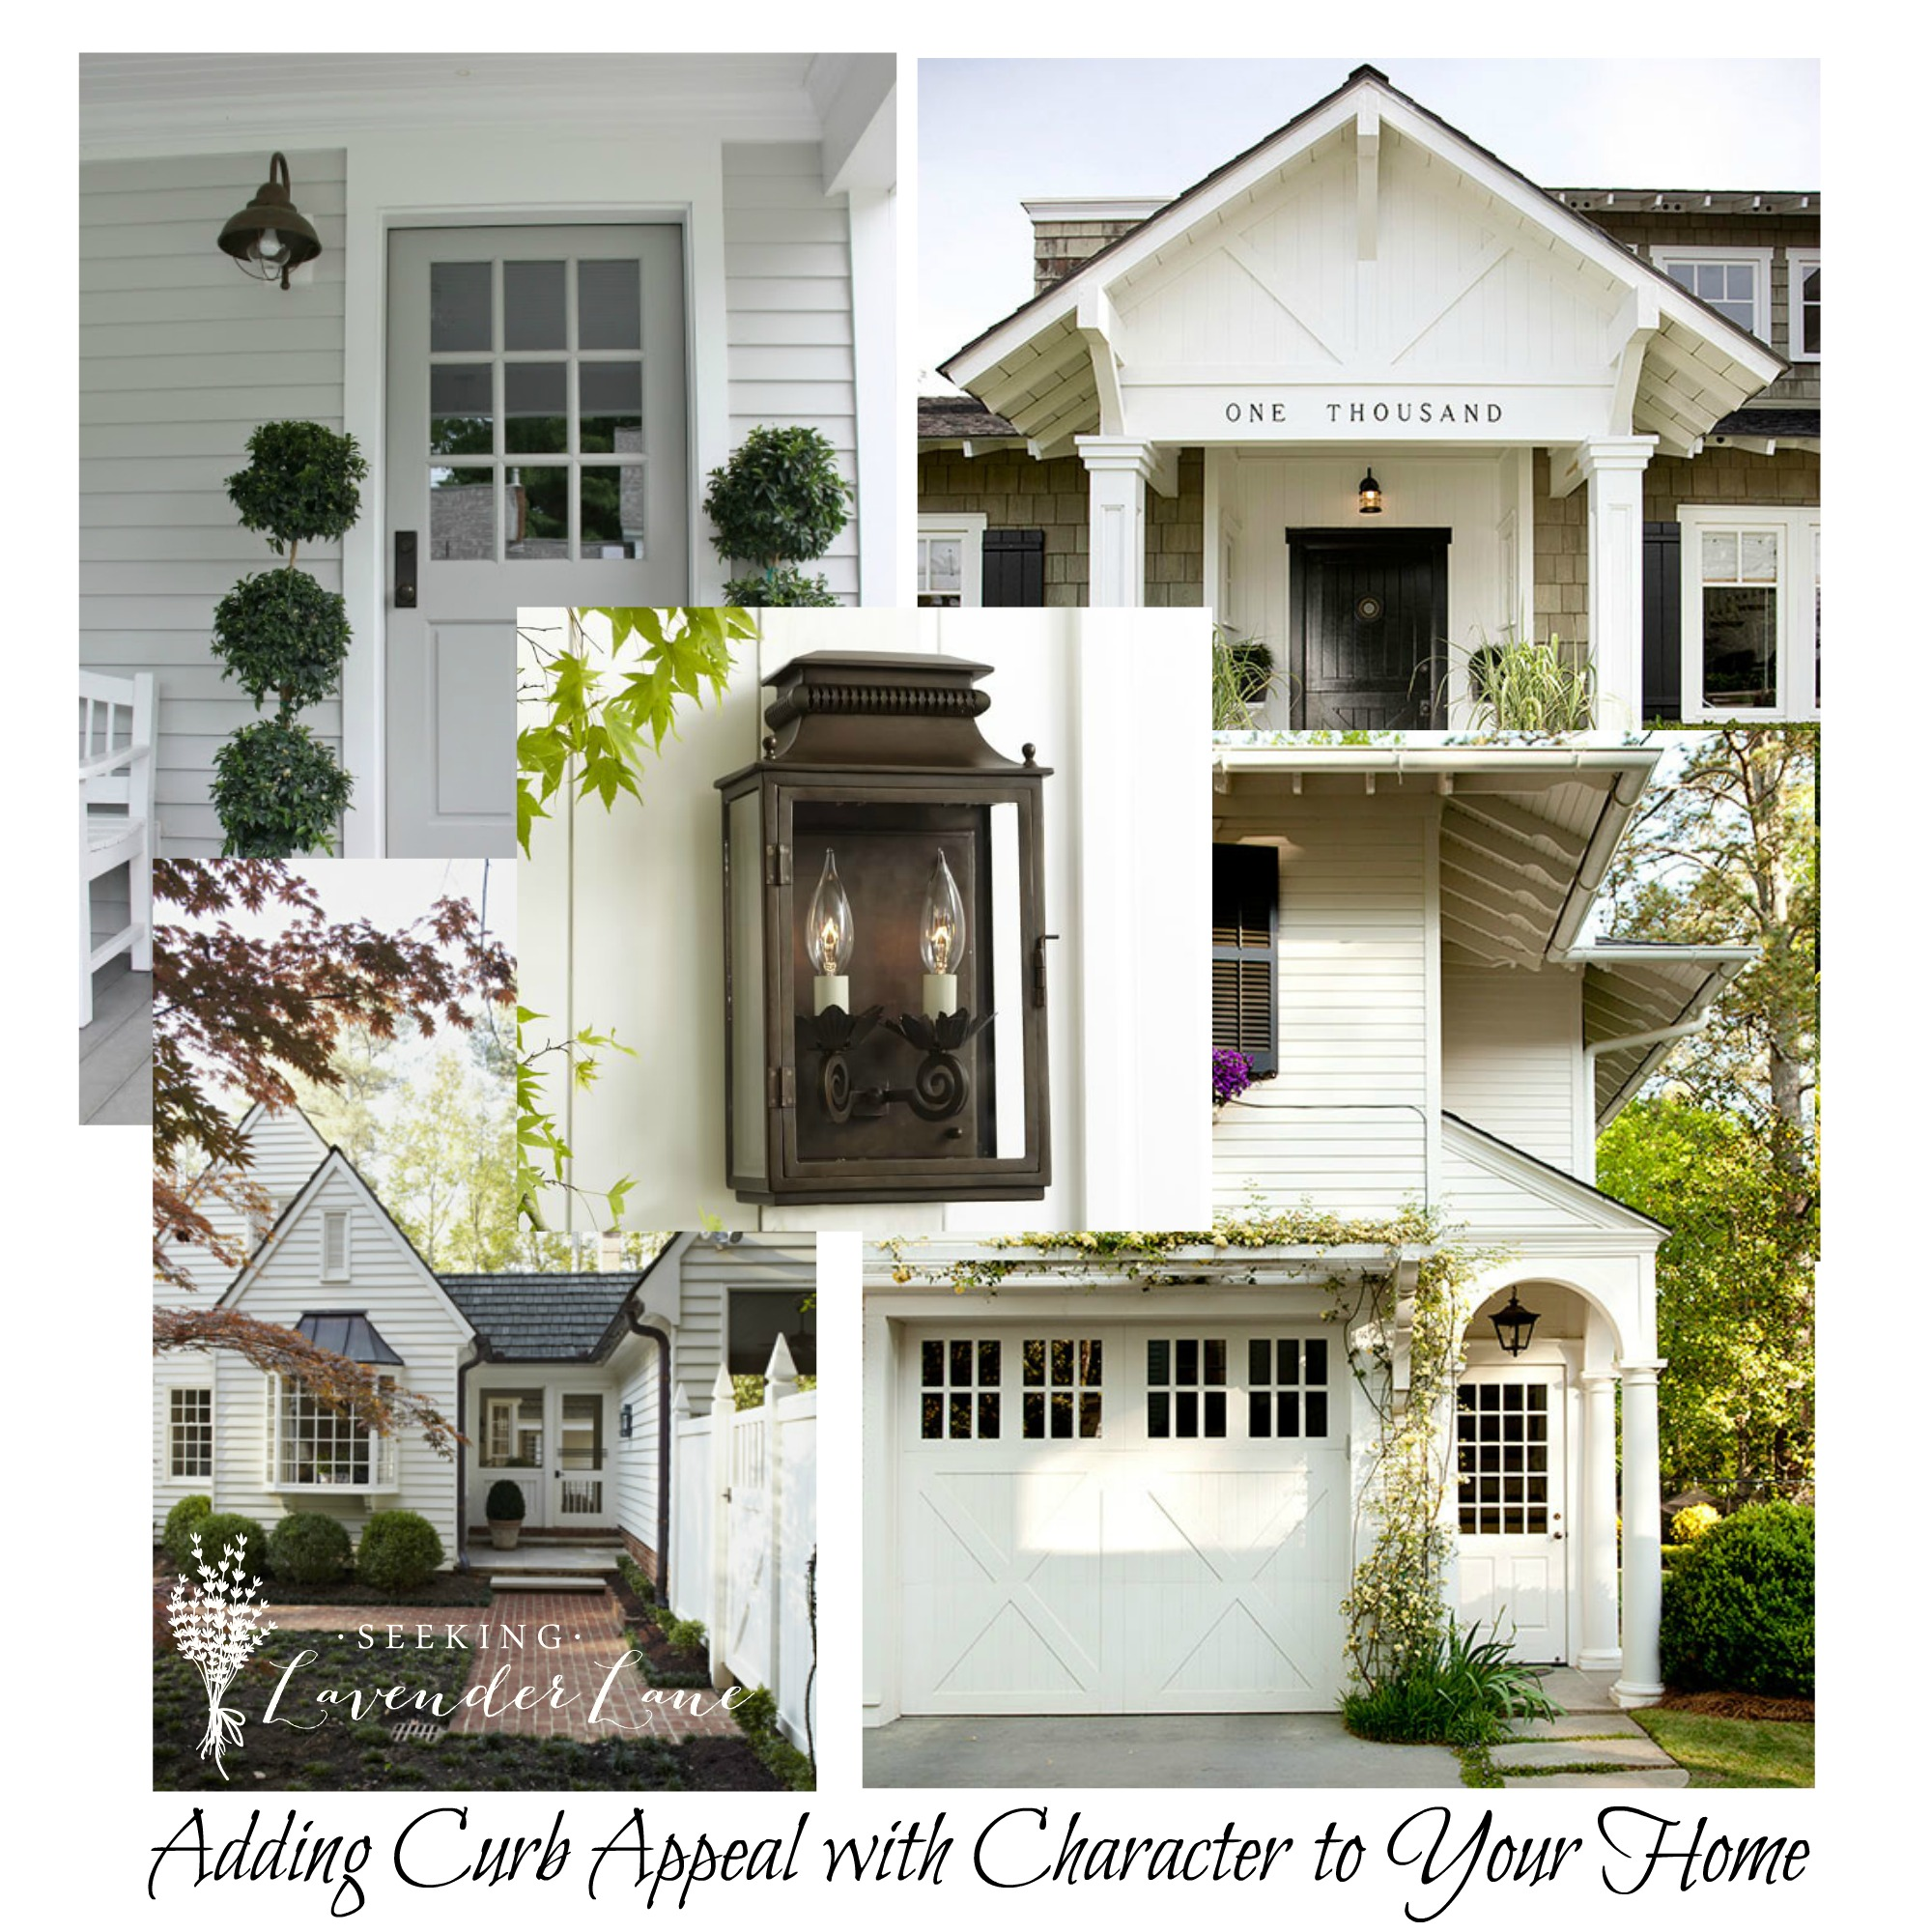 Adding curb appeal with character seeking lavendar lane for Add on to house